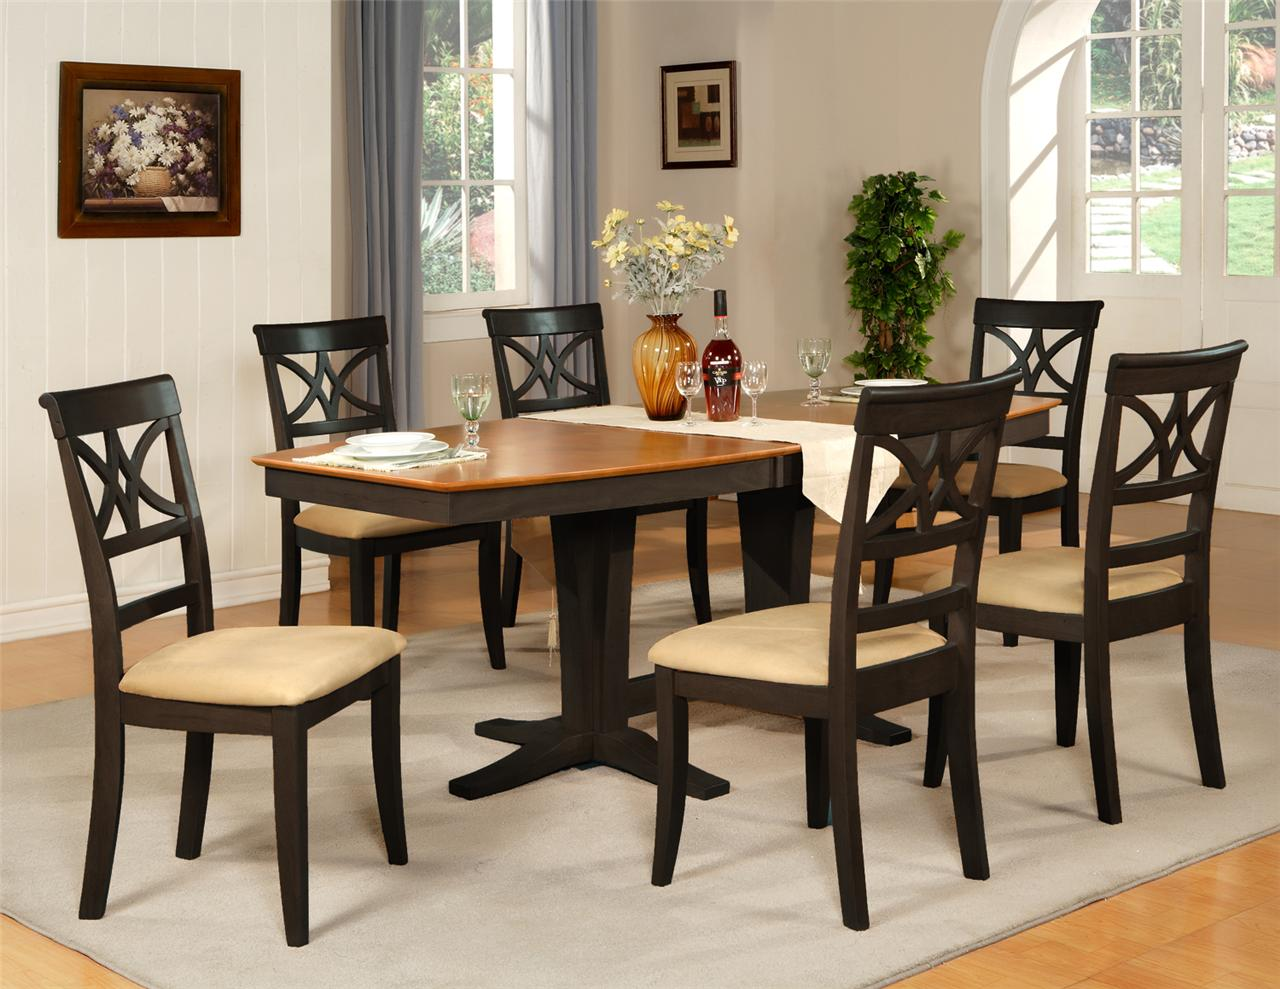 ... DINING ROOM TABLE w/ 6 MICROFIBER PADDED CHAIRS BLACK & CHERRY BROWN